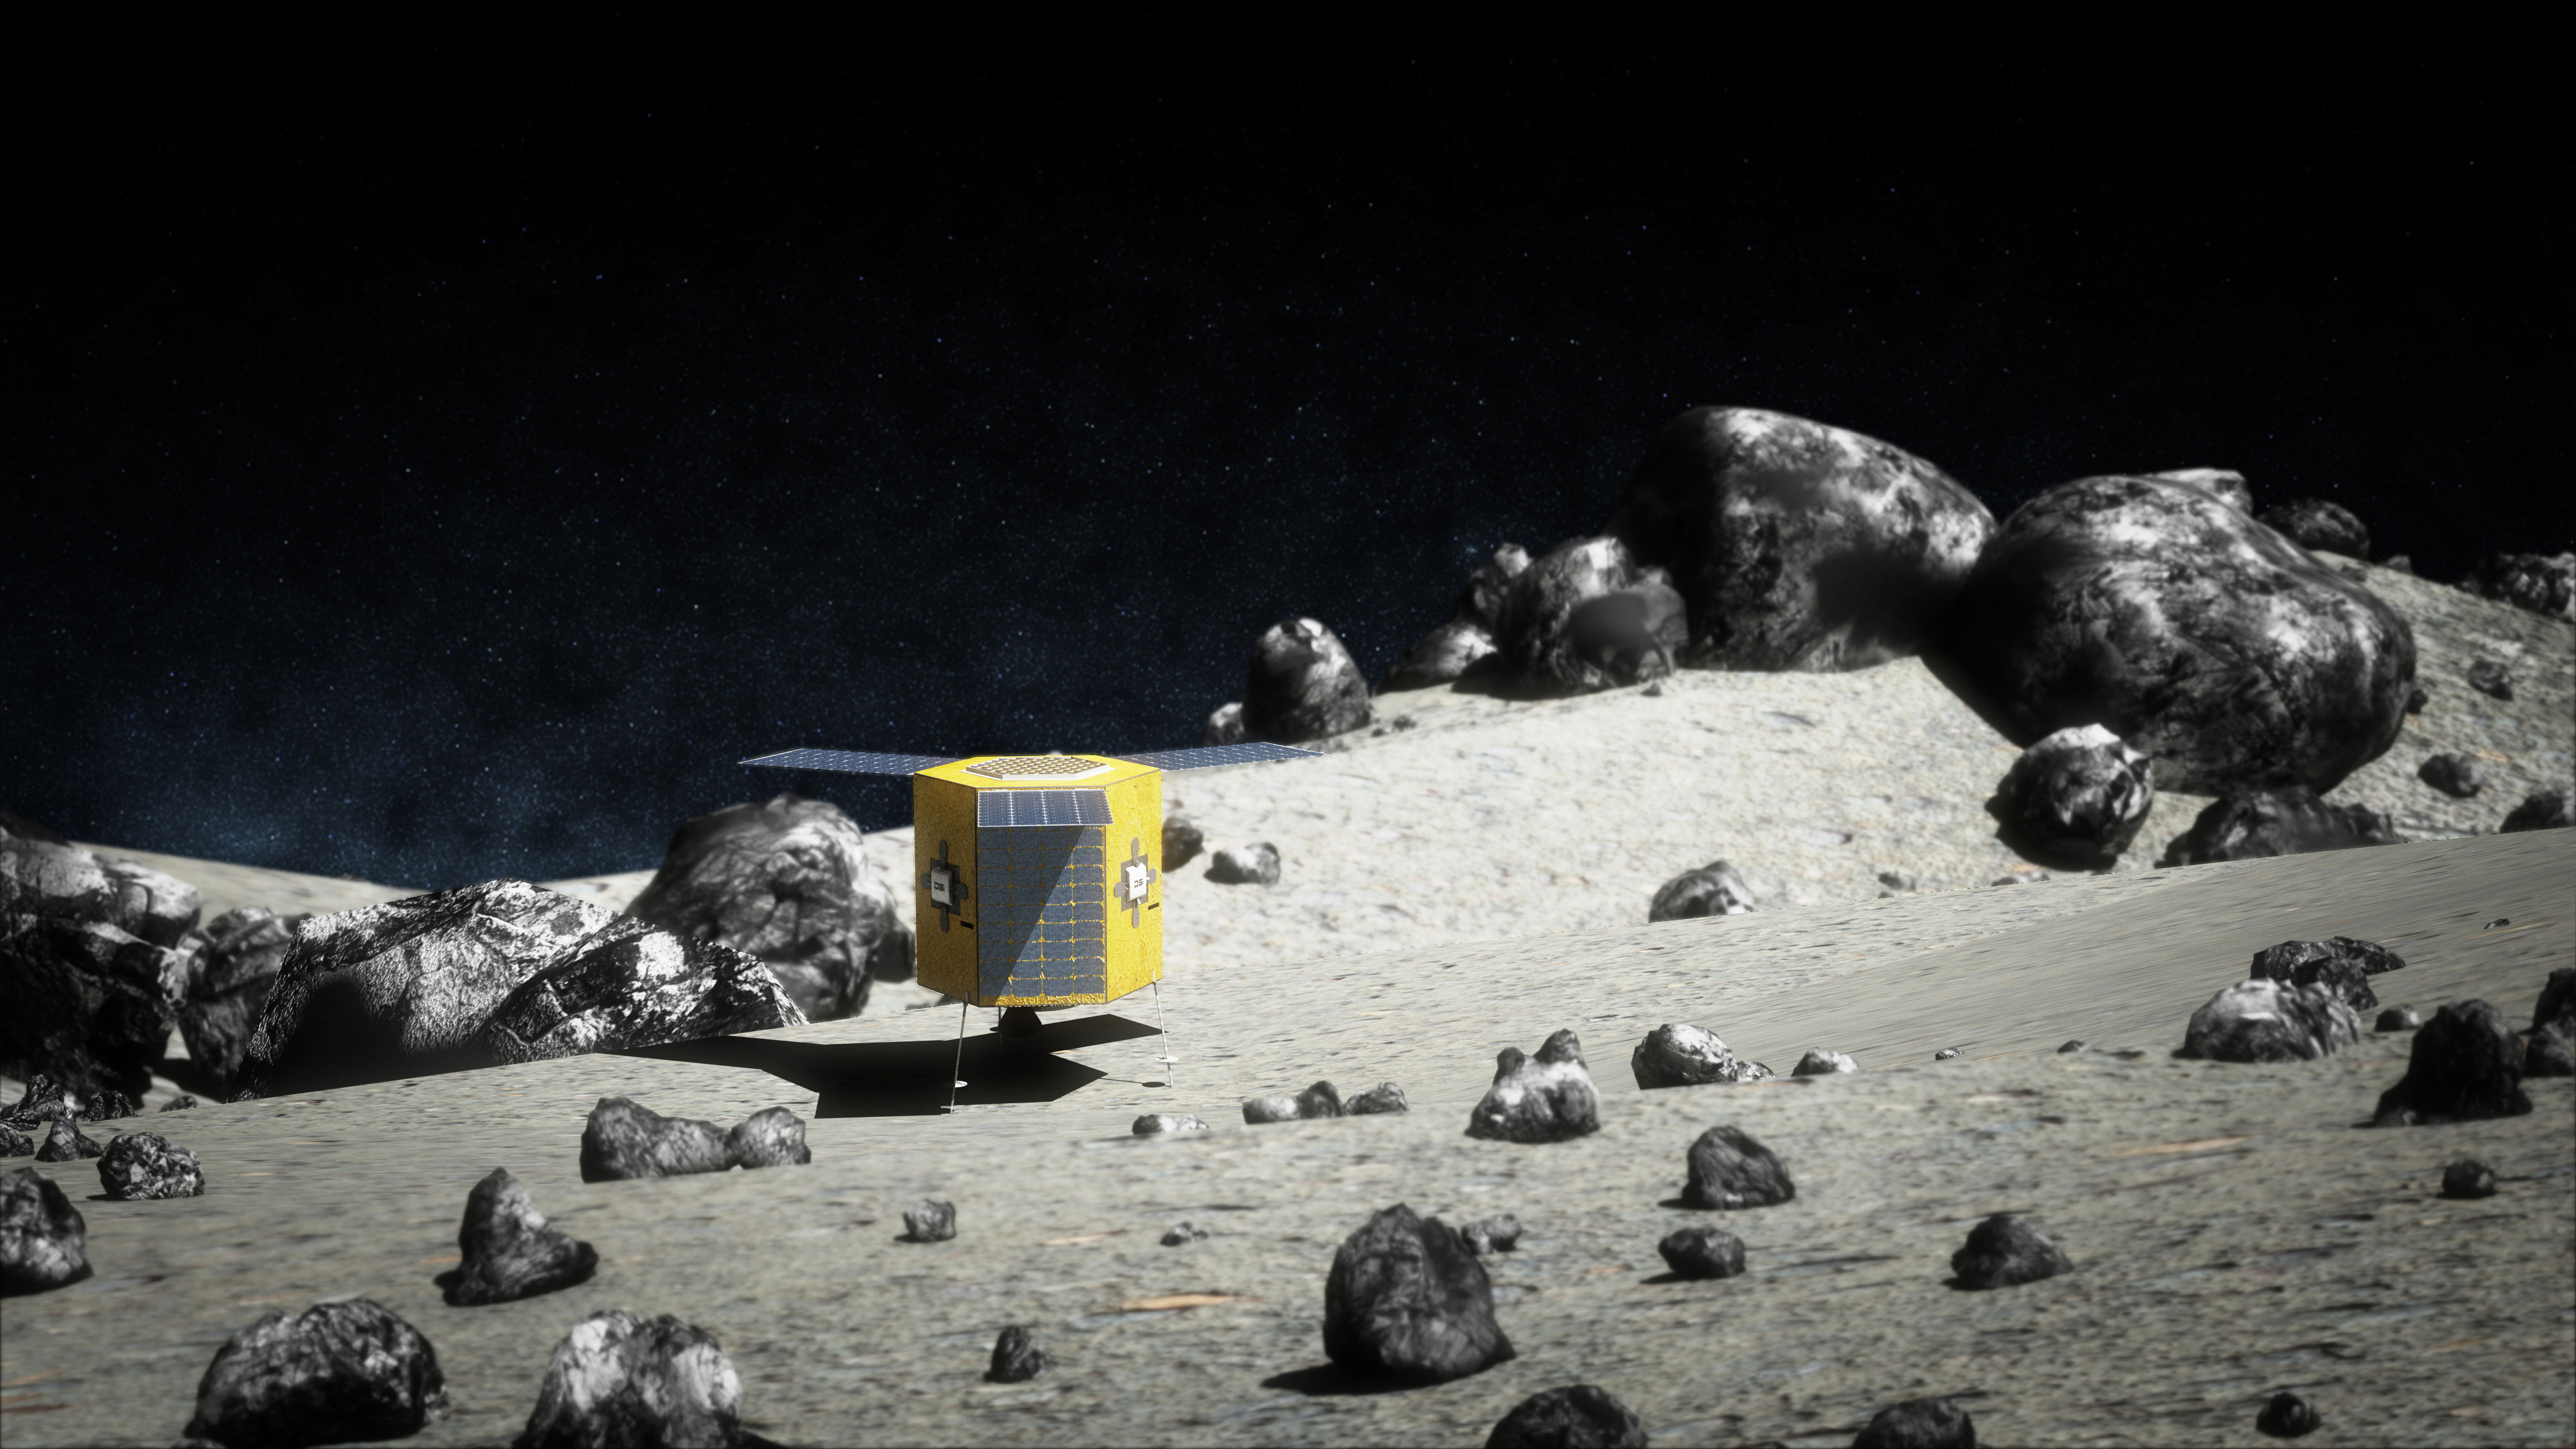 Artist's illustration of DSi Prospector-1 on the surface of an asteroid. Credit: Deep Space Industries